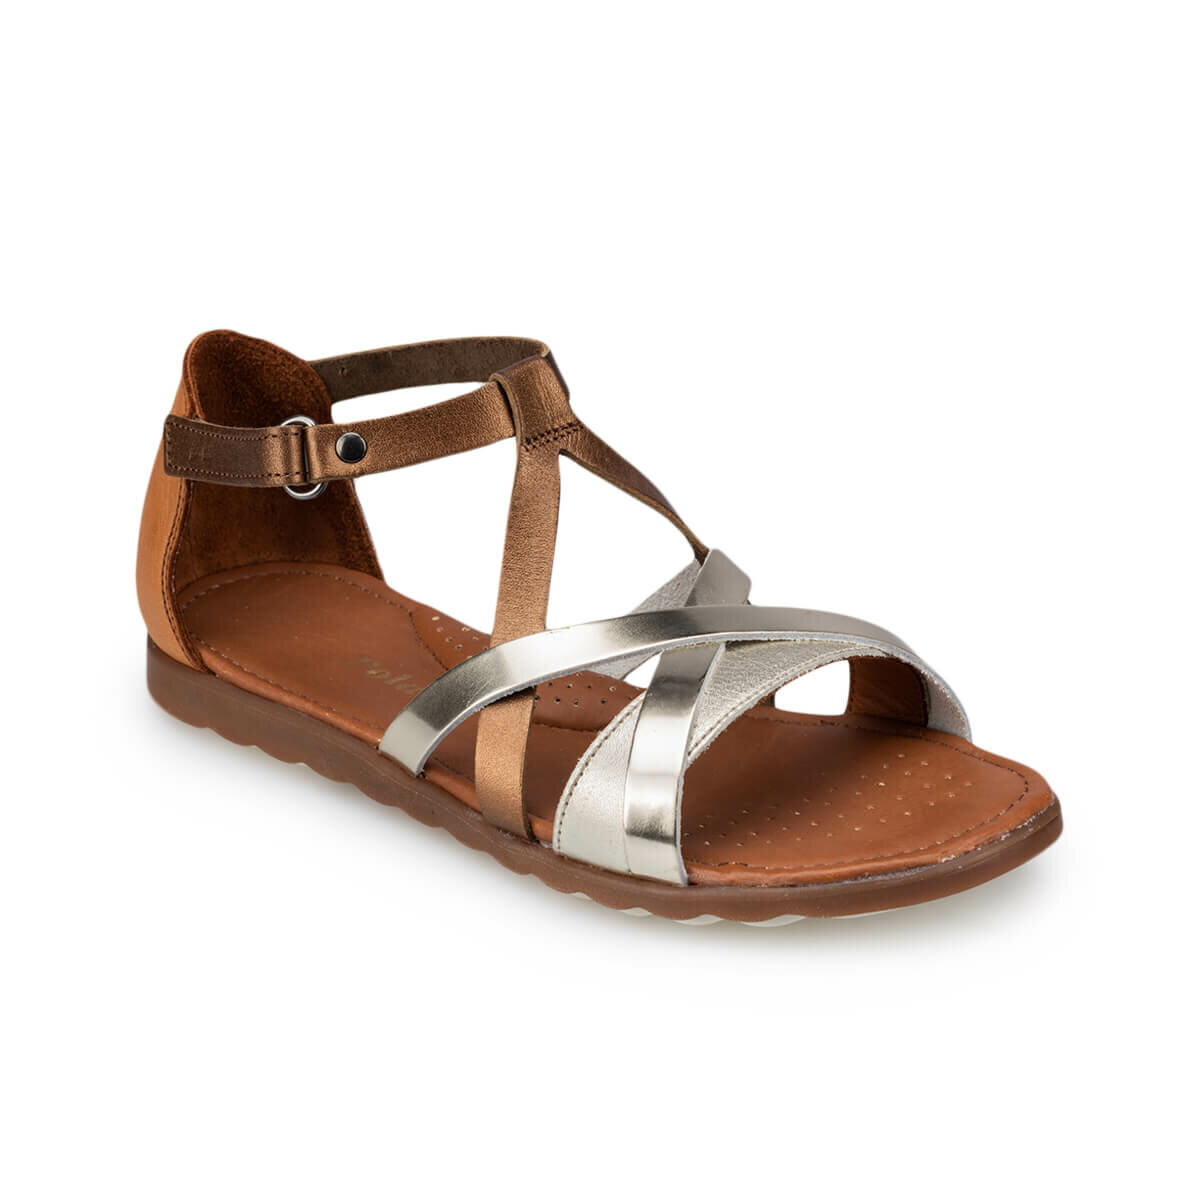 FLO 91. 510075.P Bronze Female Child Sandals Polaris